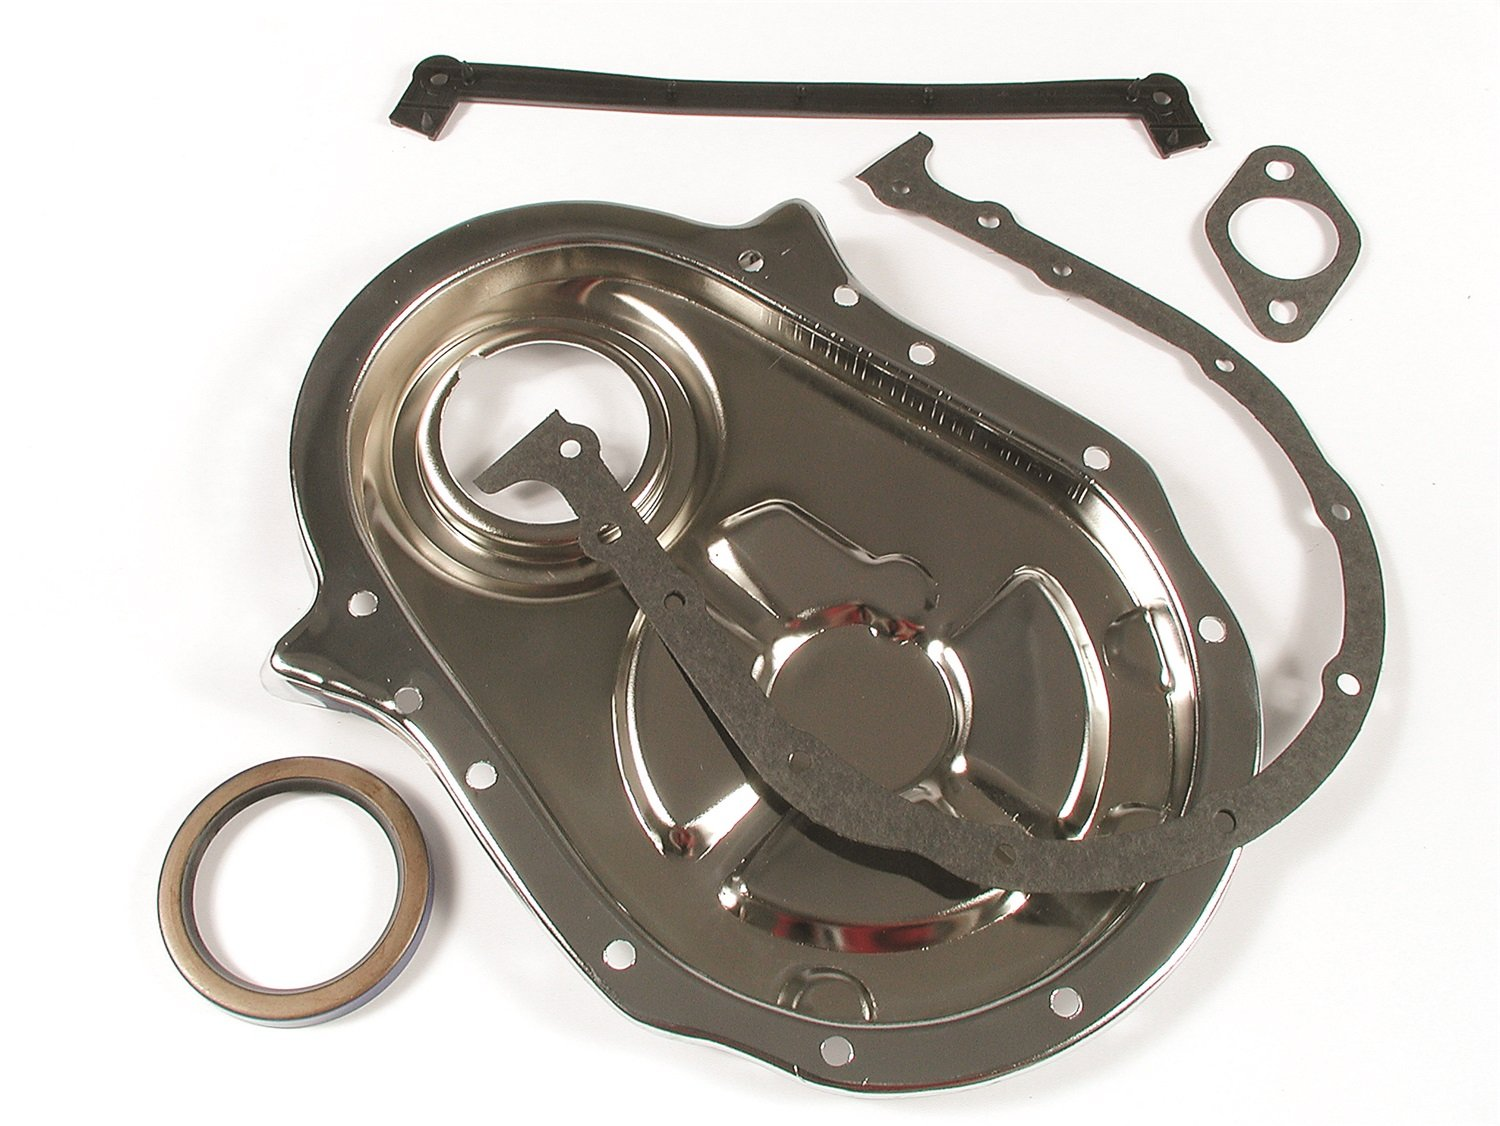 Gasket 4591 Chrome Plated Timing Cover Mr Gasket Mr